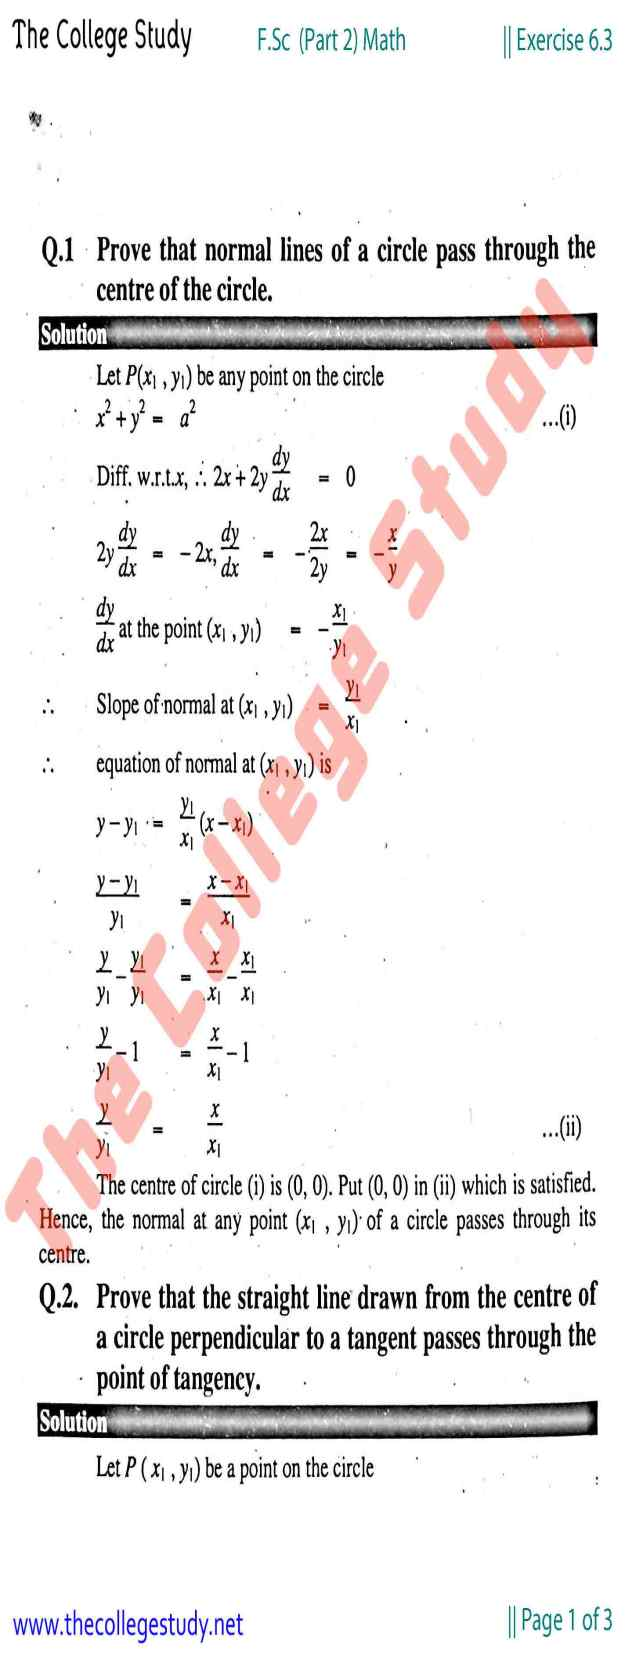 Exercise 6.3 Solution FSc 2nd Year Math